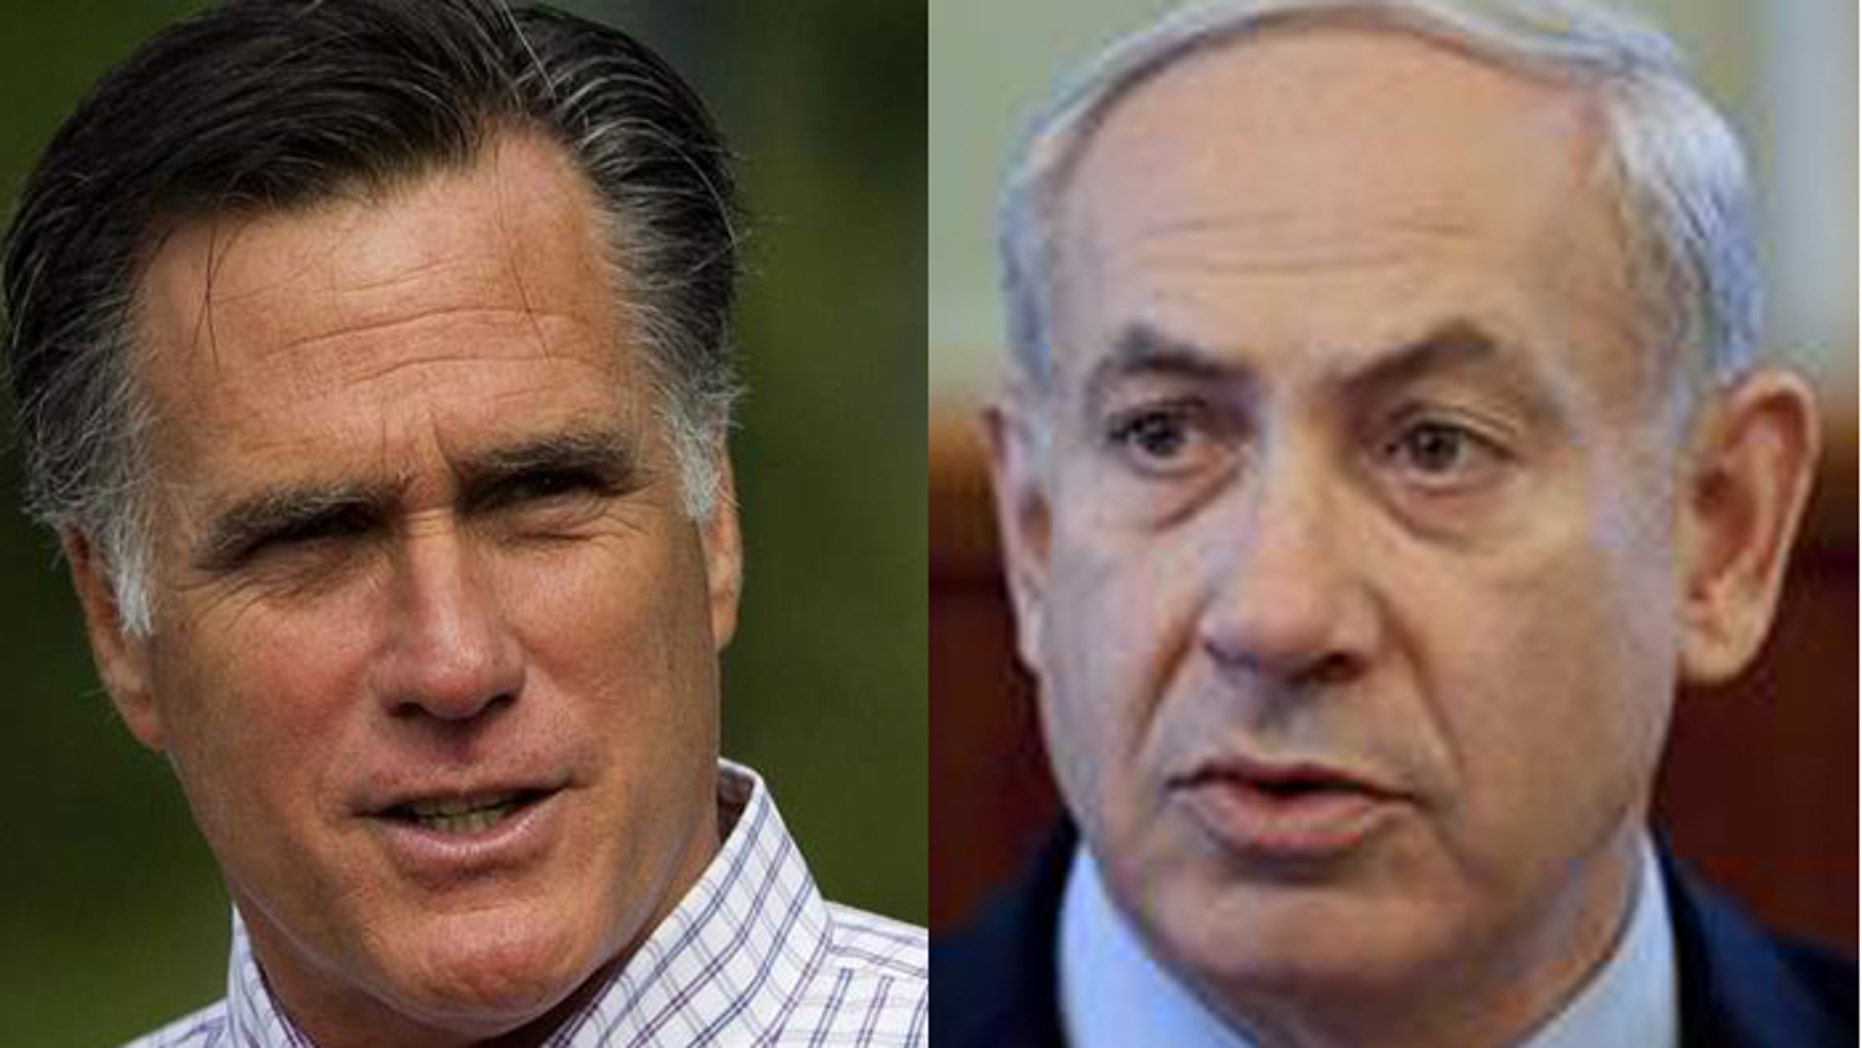 Some in Israel believe Prime Minister Benjamin Netanyahu (r.) could be waiting for his old friend Mitt Romney to become president to launch an attack on Iran. (AP)